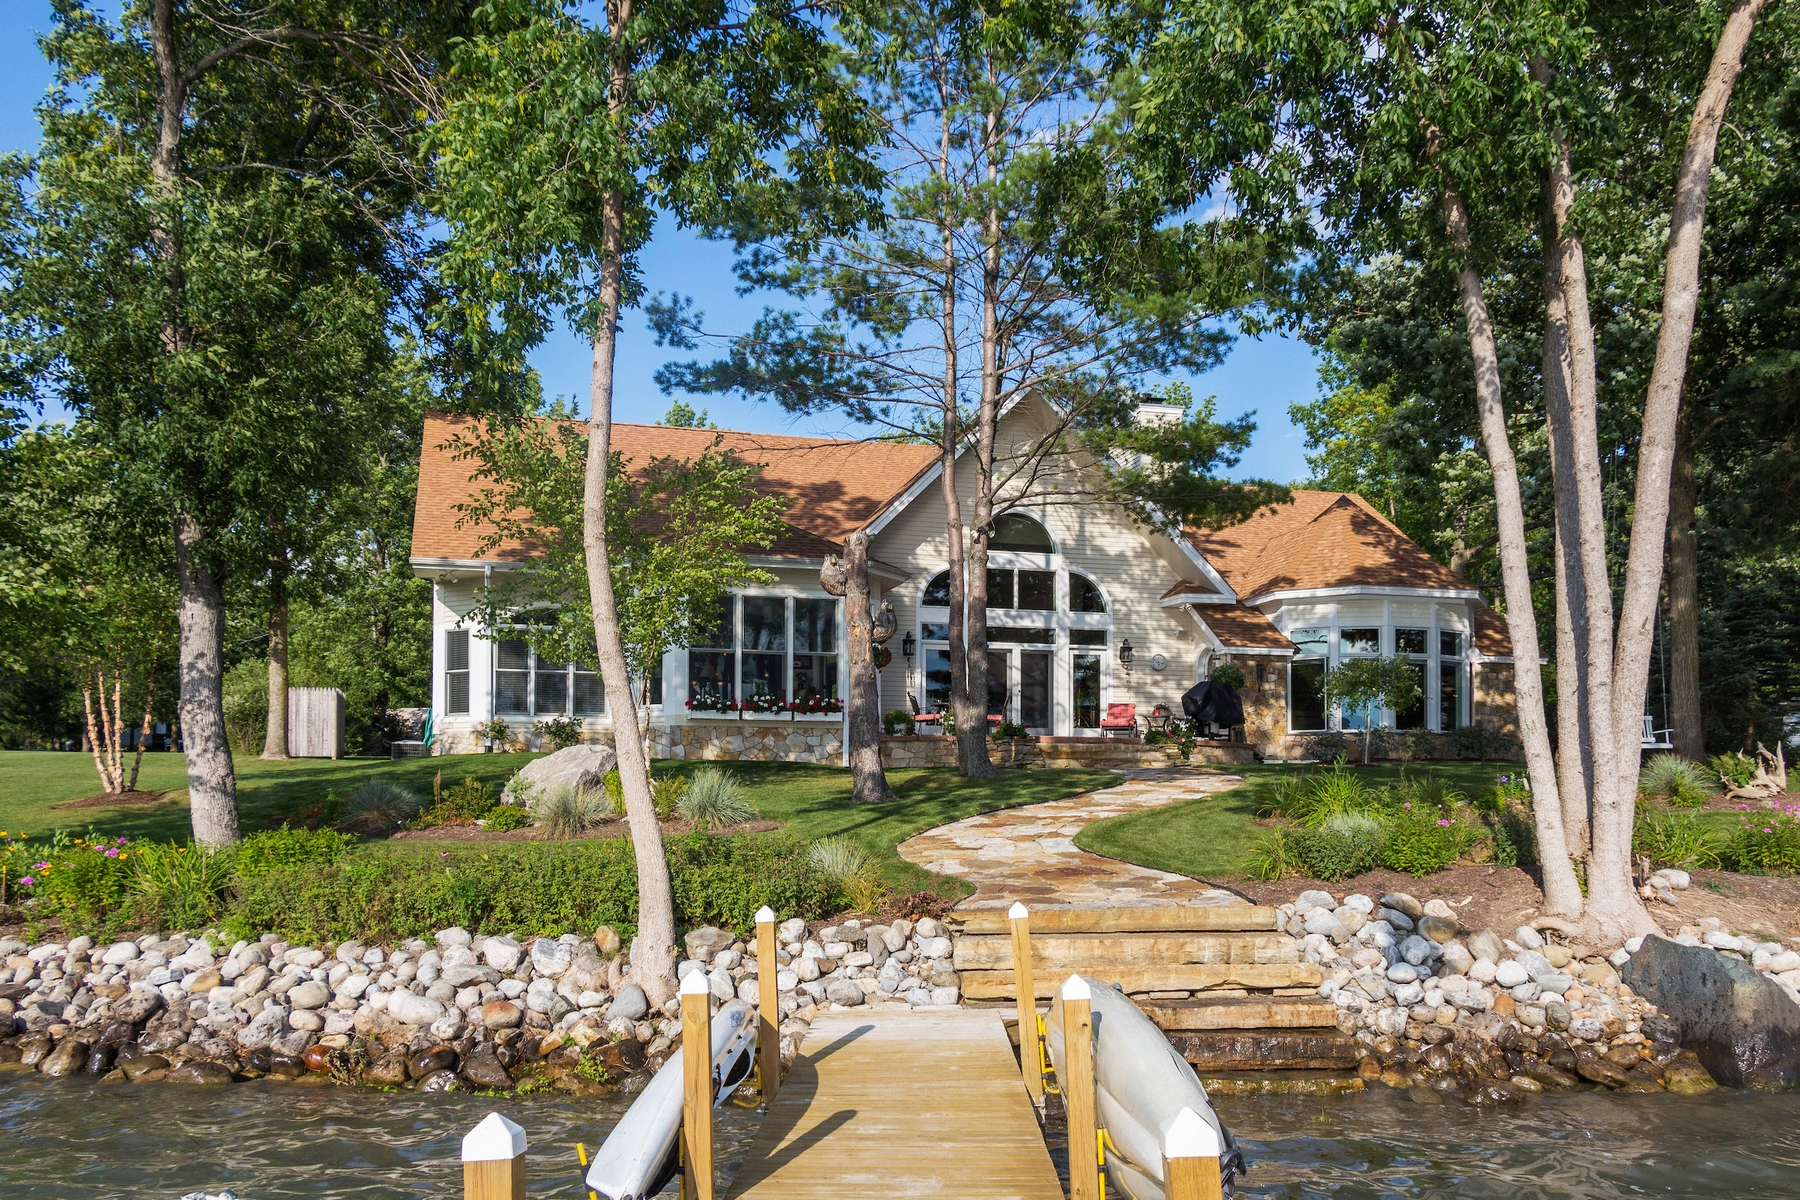 Single Family Home for Sale at Custom Waterfront Home on Lake George 212 Black Point Road Ticonderoga, New York 12883 United States